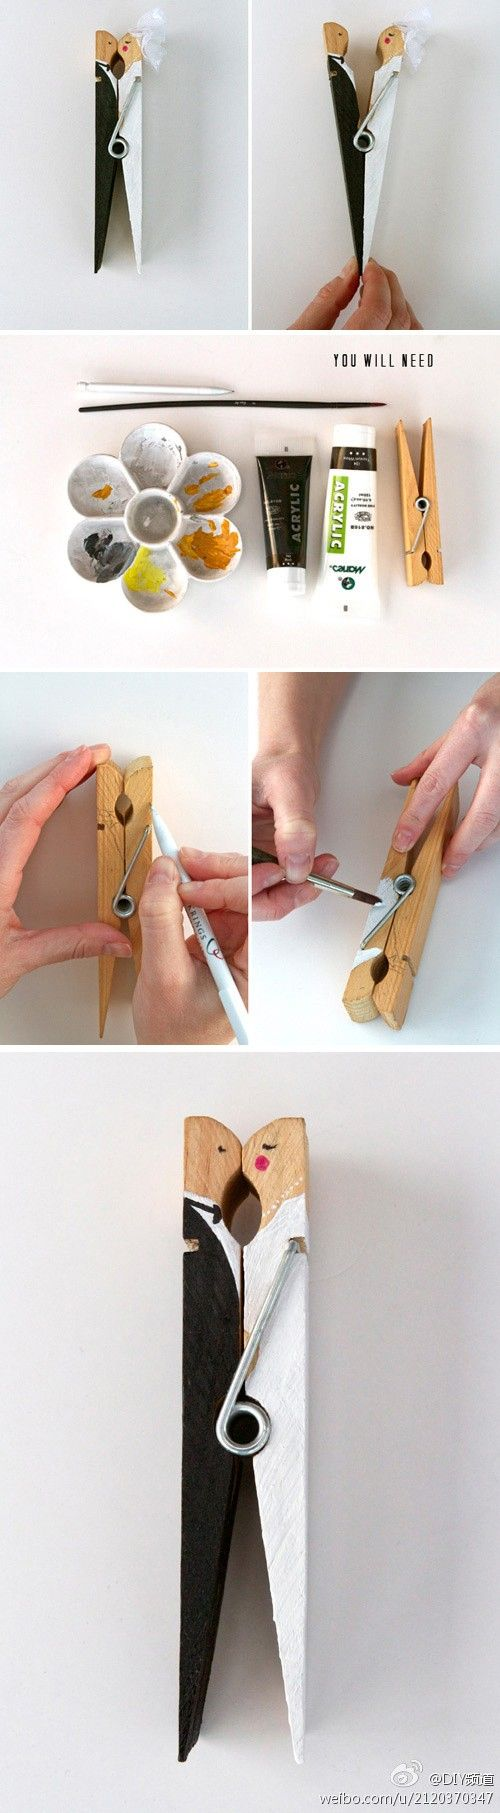 Turn a clothespin into the cutest dang #wedding diy ever!